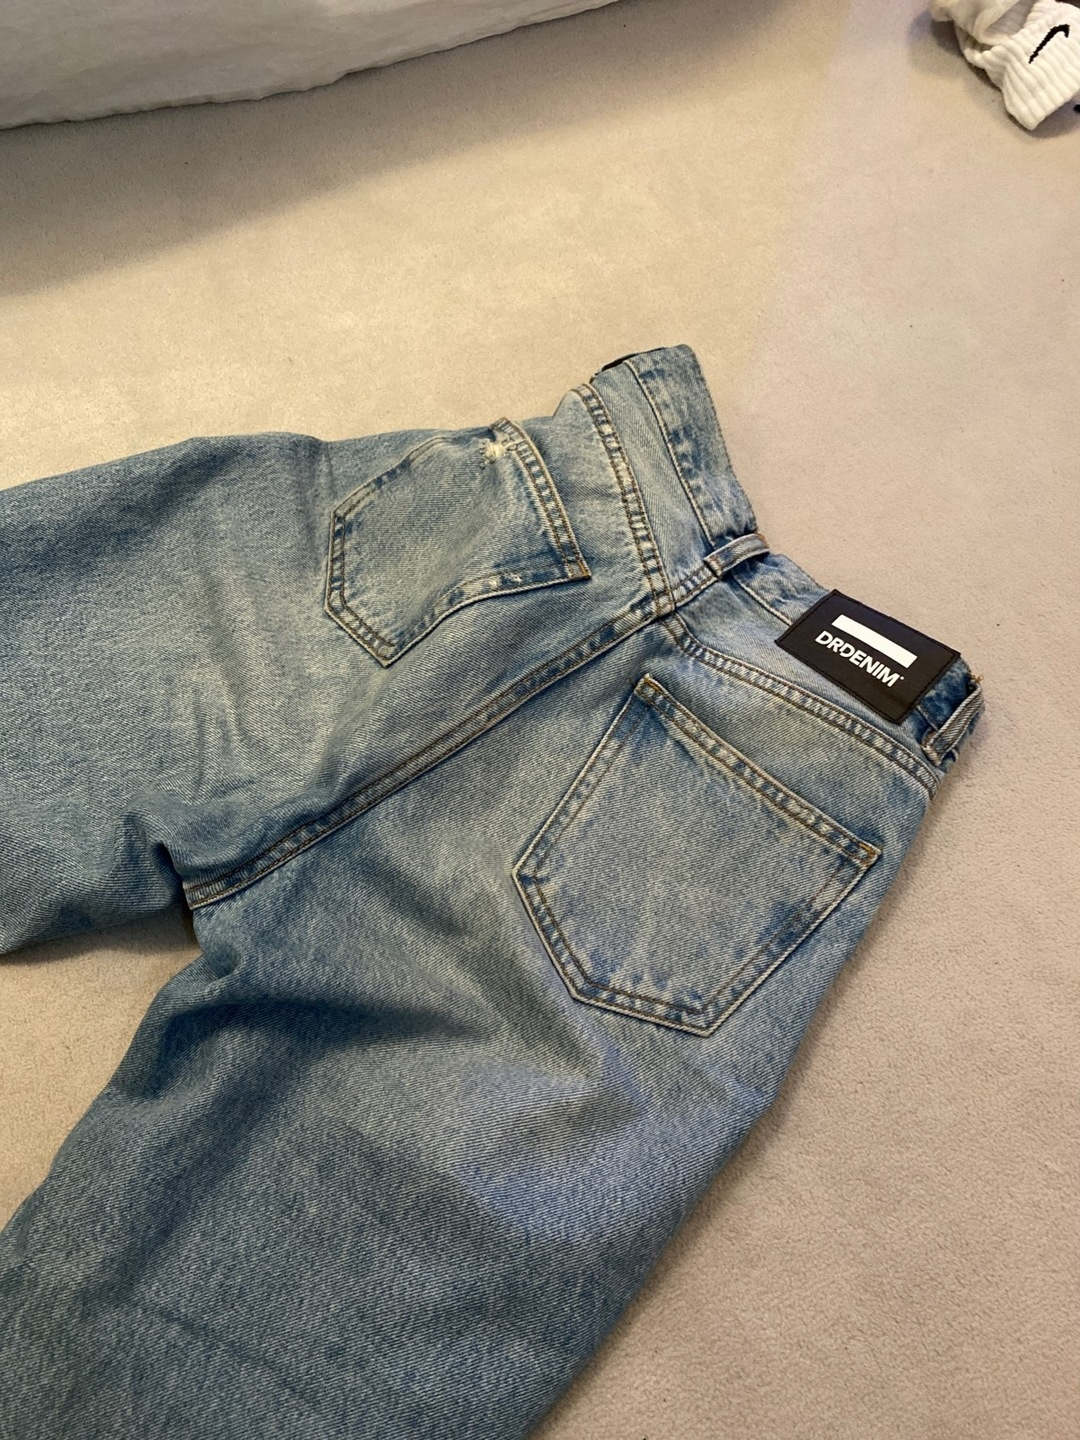 Women's trousers & jeans - CARLING'S photo 3